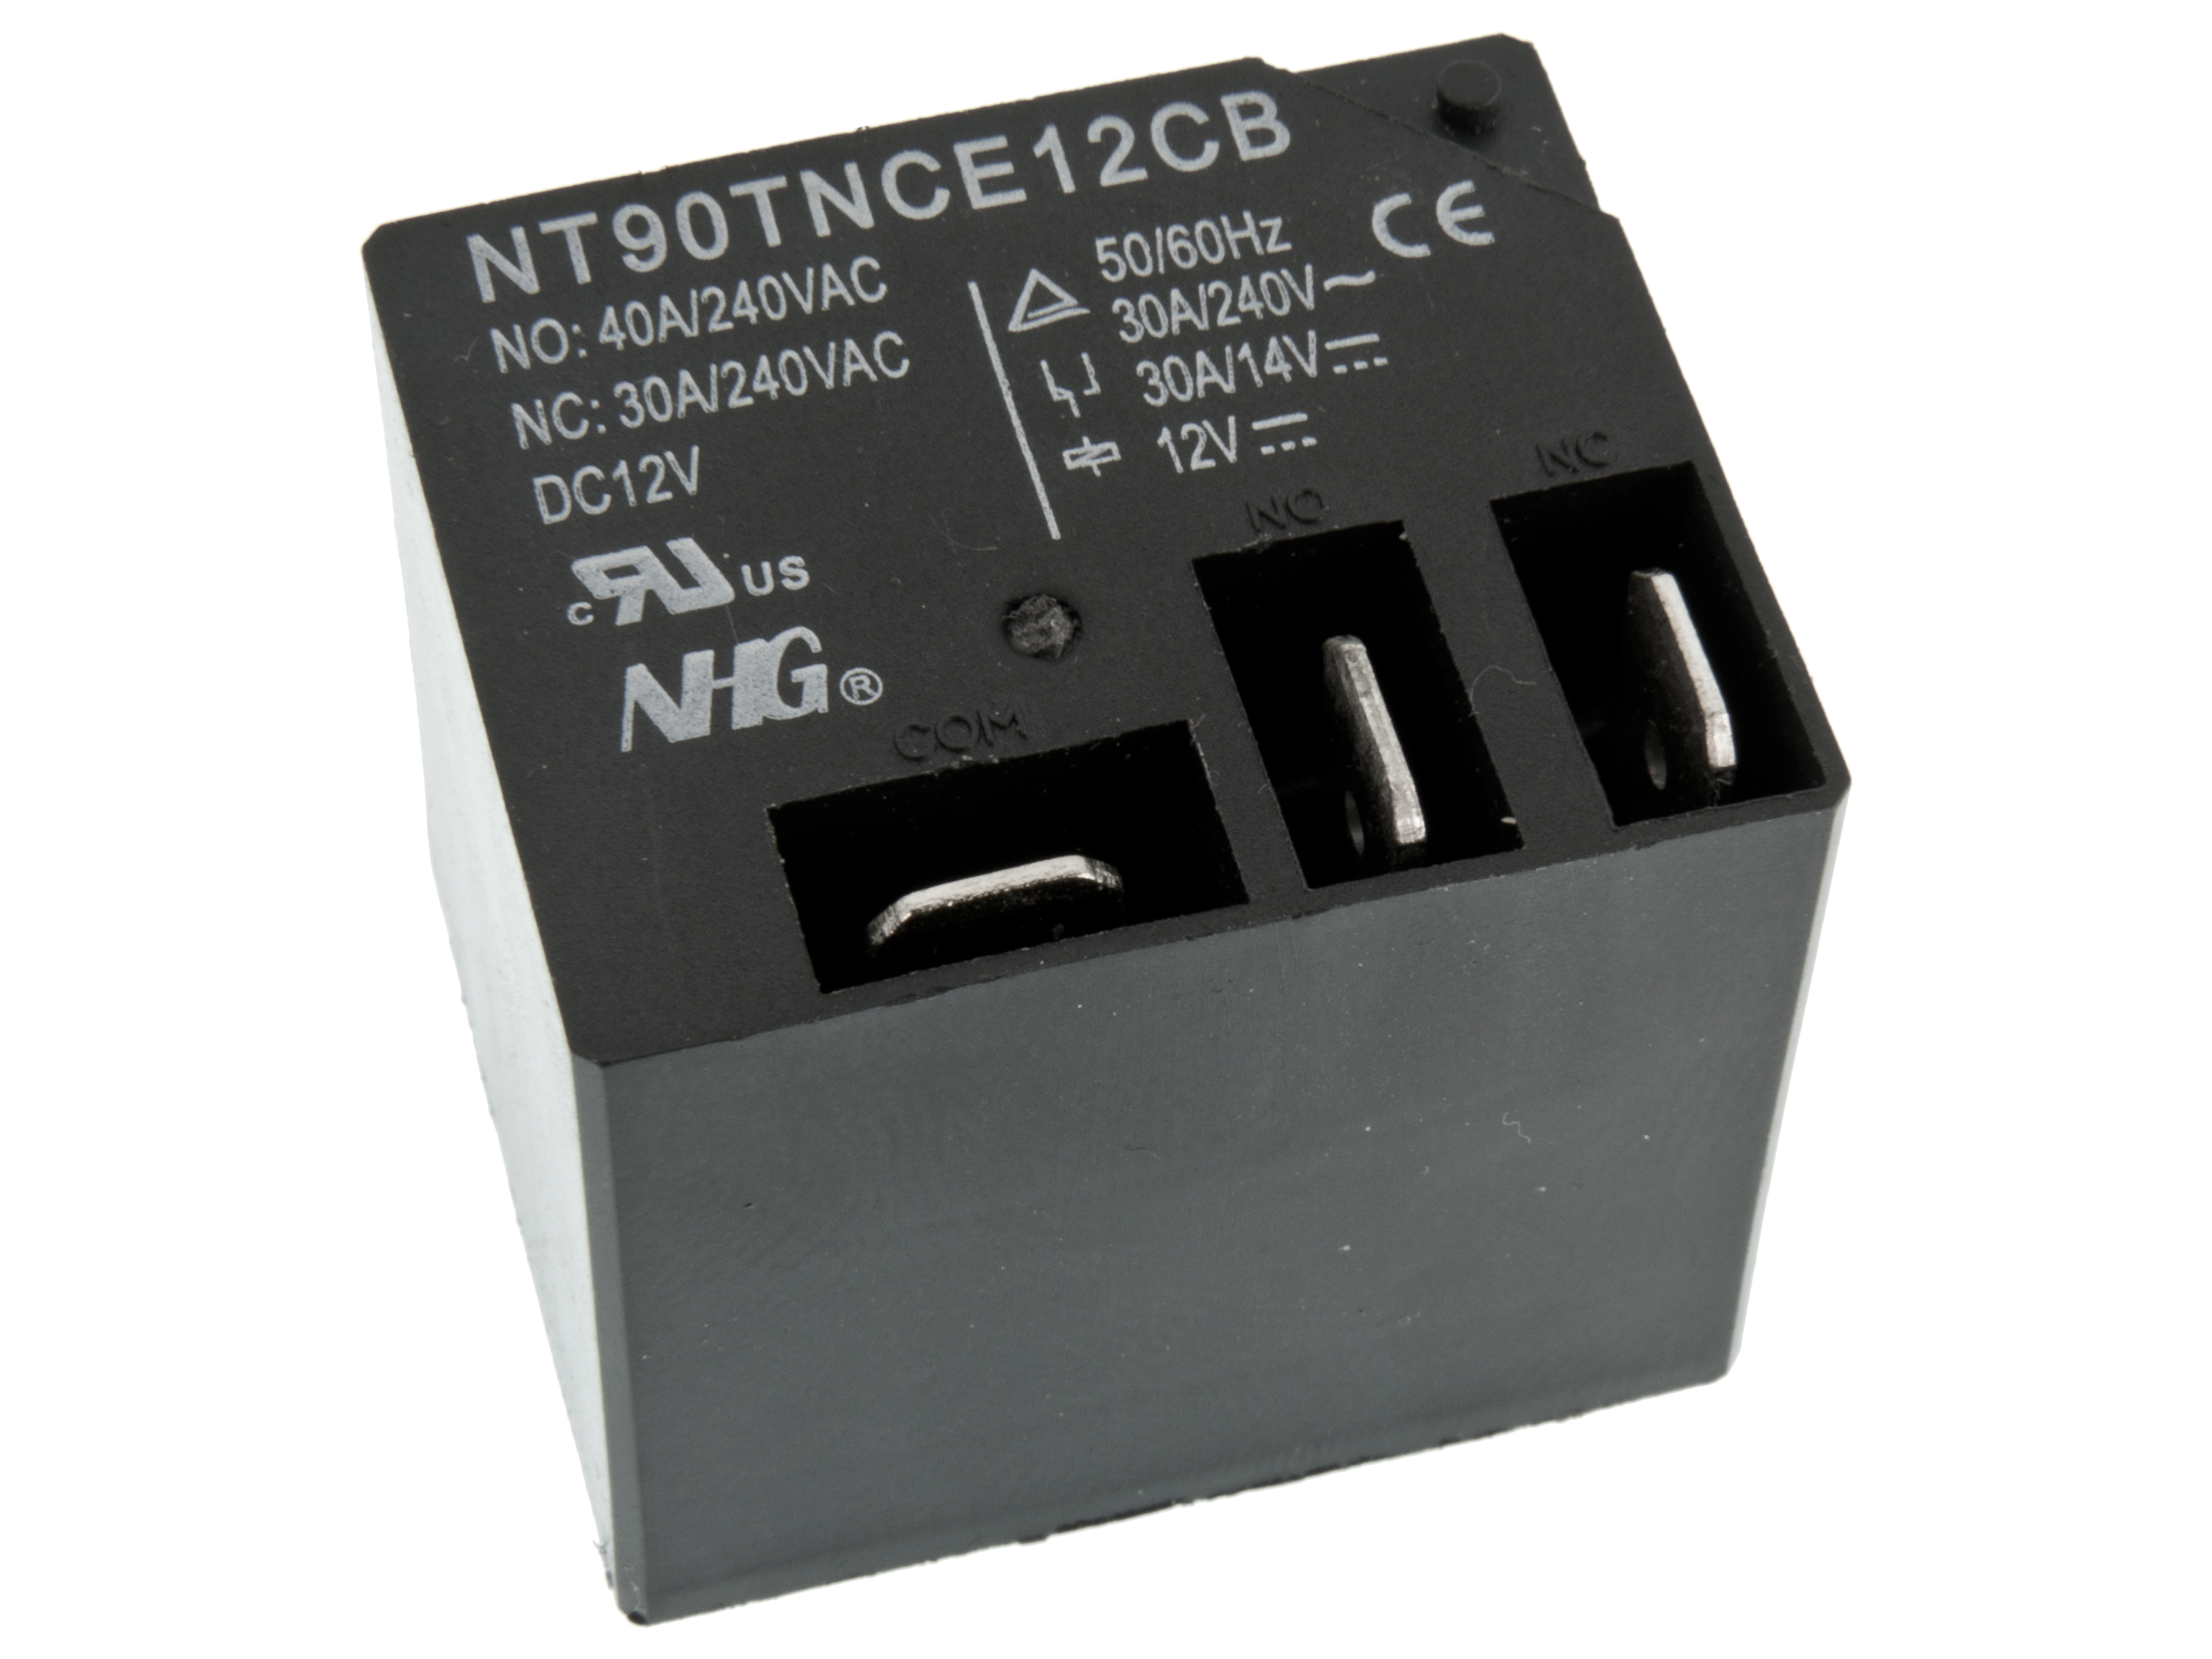 Buy Relay Nt90tnce12cb 1 P Switching 12v 30a Surplus At The Right Spdt Price Home Relays Pcb